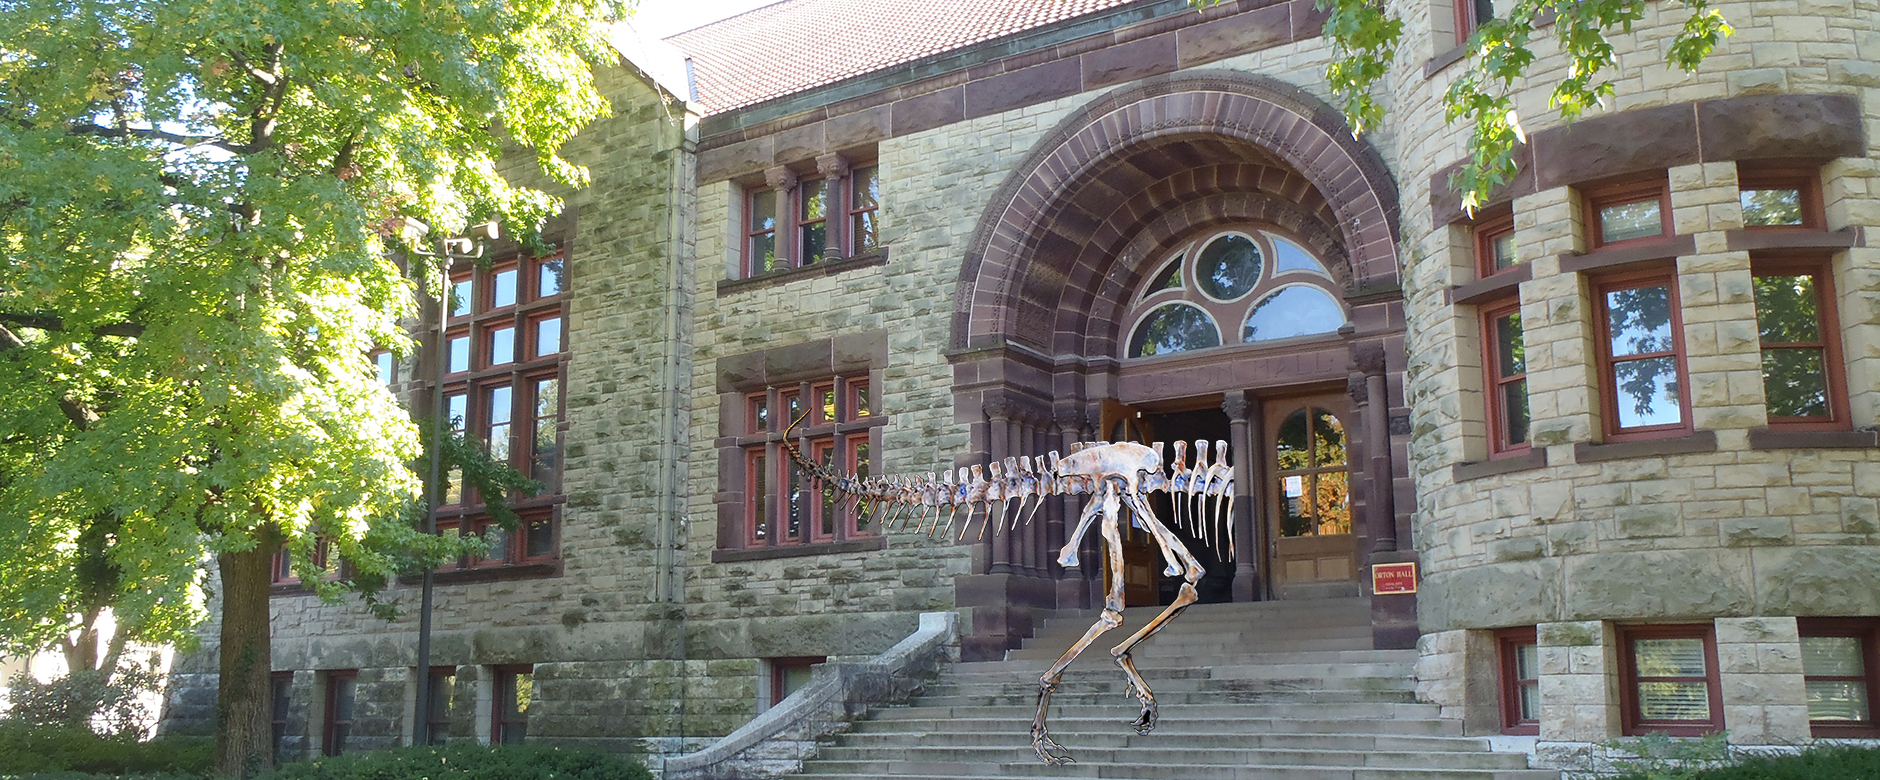 The dinosaur skeleton enters the Museum building